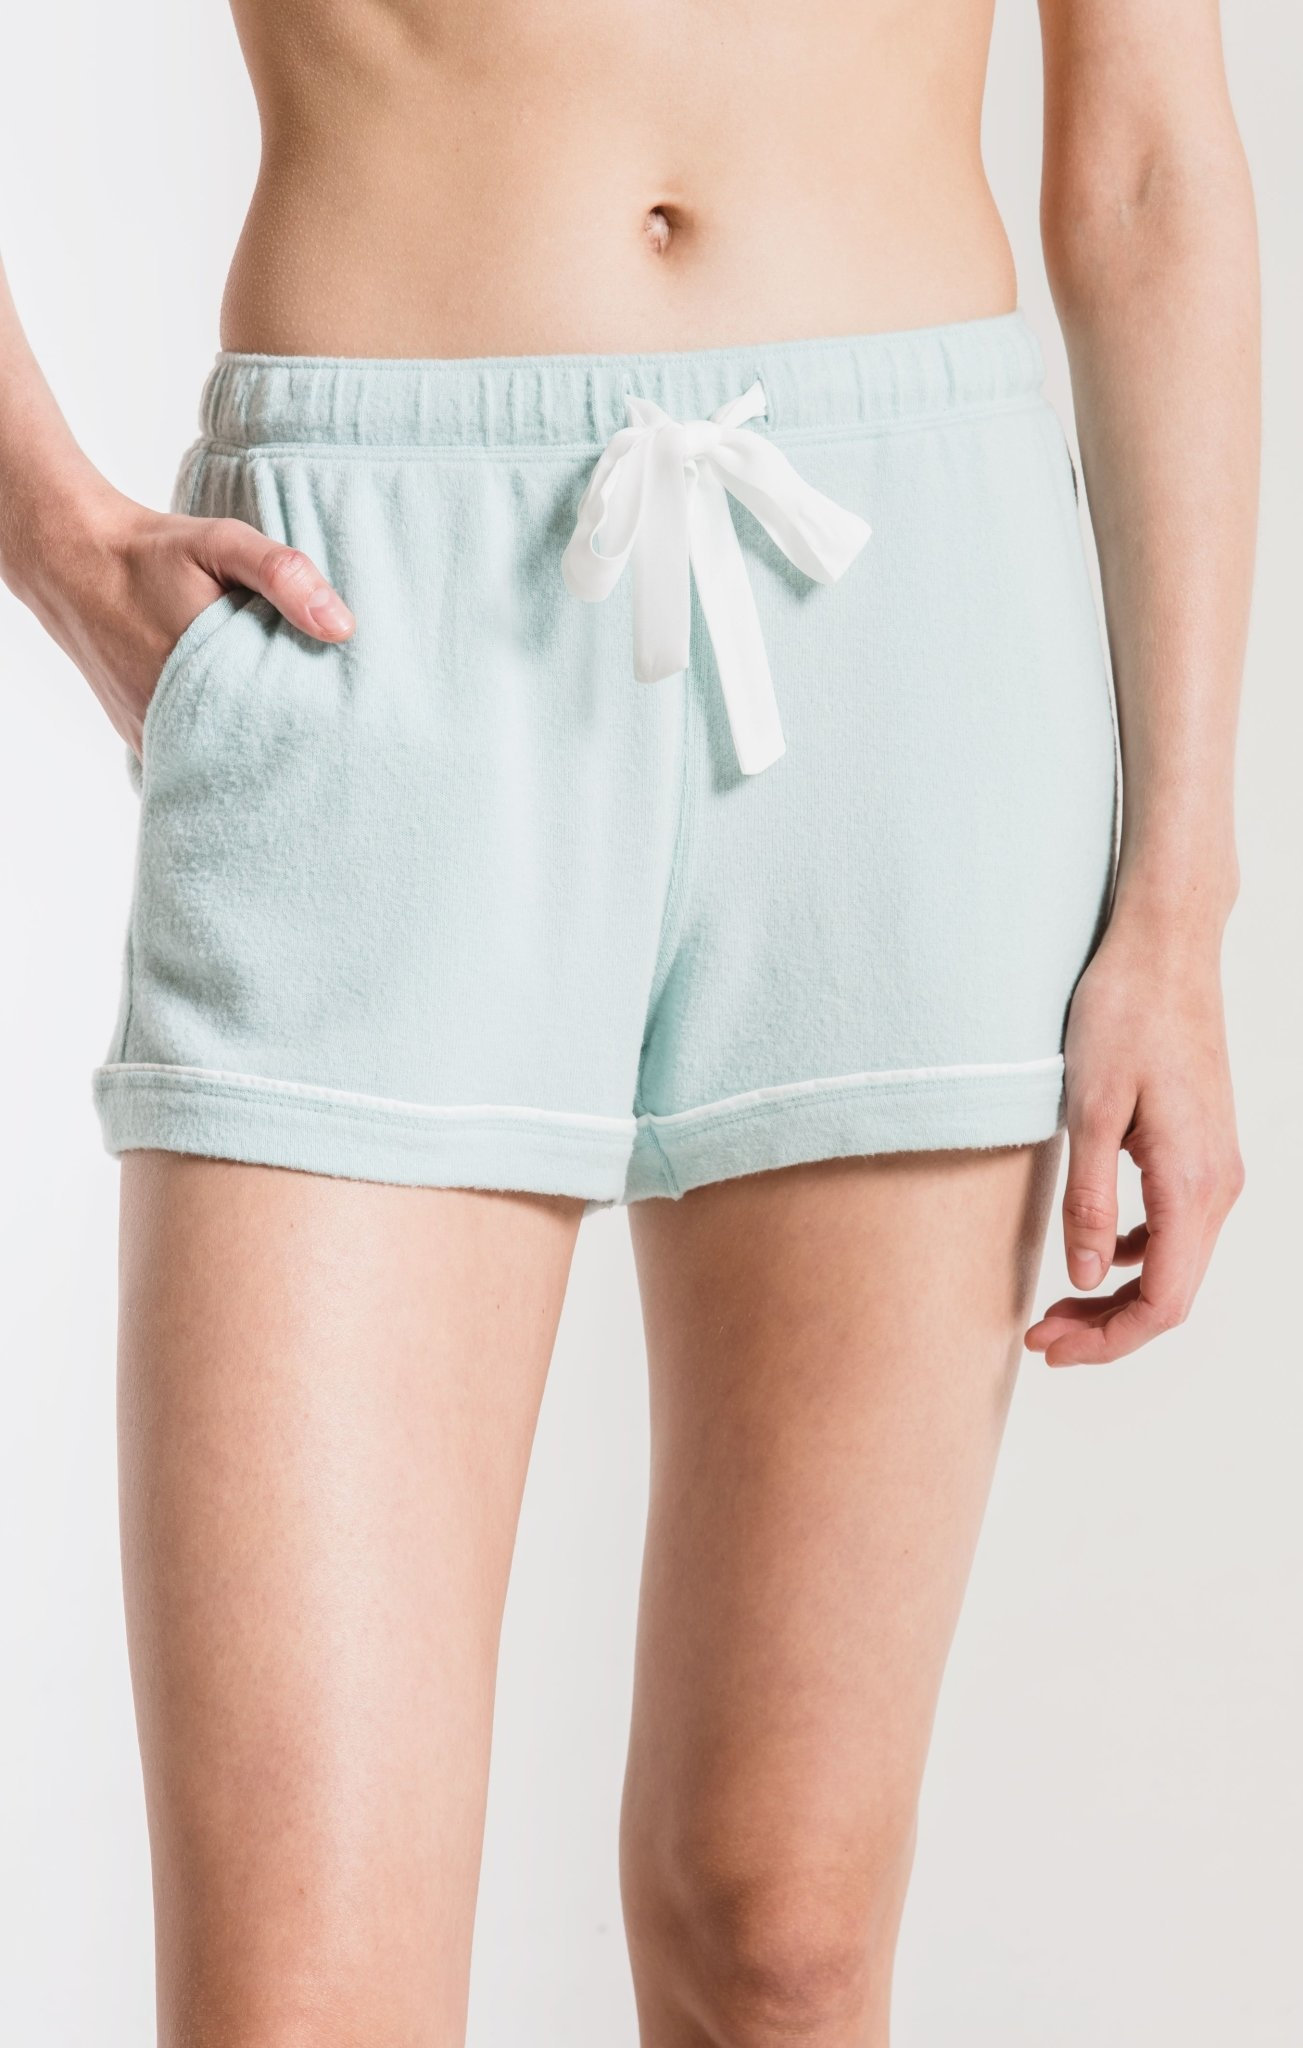 Z SUPPLY the luxe menswear pajama shorts